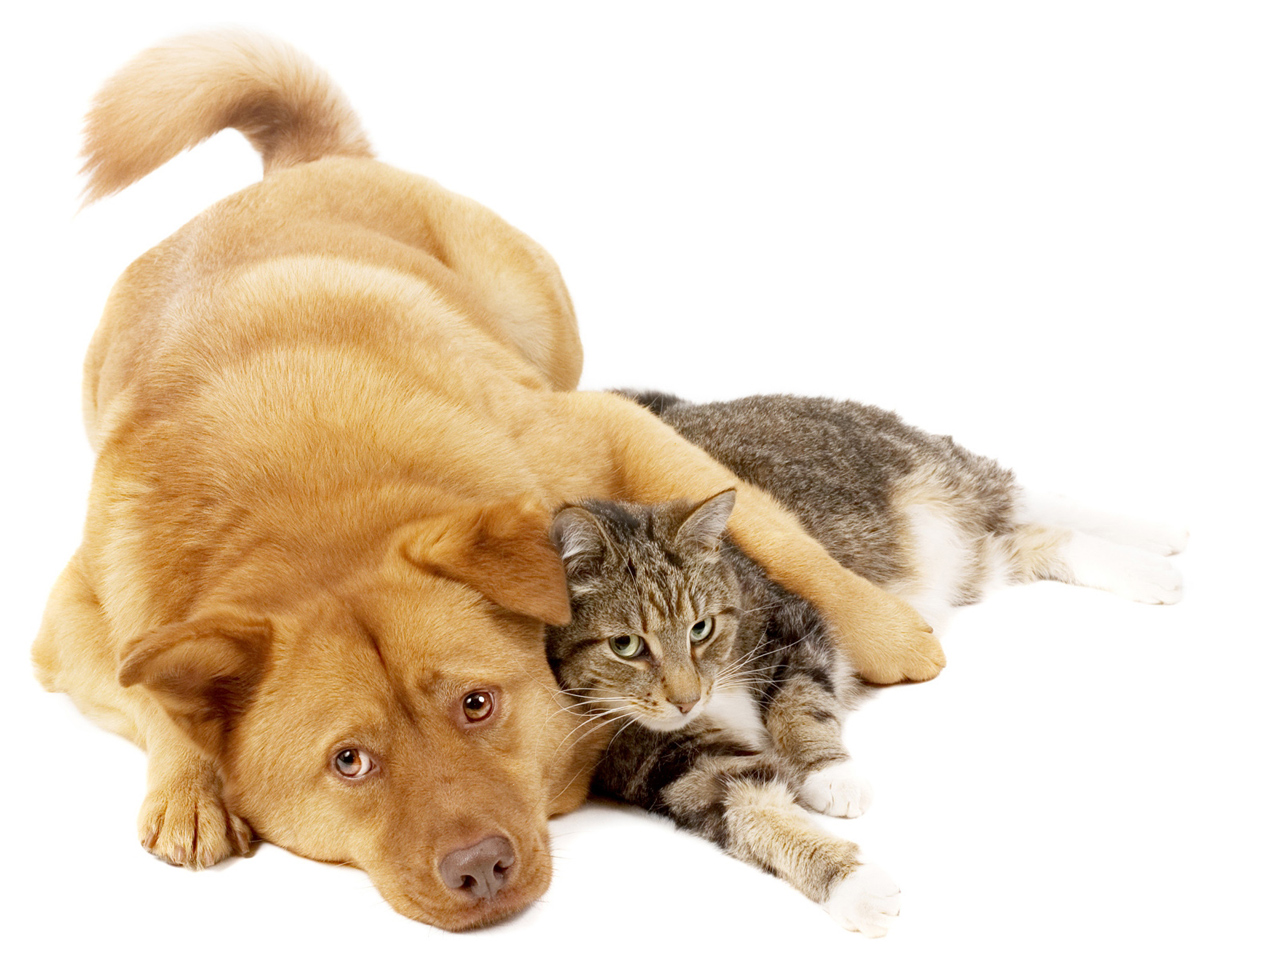 Free Download Dog And Cat On White Background Freecomputerdesktopwallpaper 1280 1280x960 For Your Desktop Mobile Tablet Explore 46 Cats Dogs Wallpaper Desktop Wallpaper Crazy Cats And Dogs Cute Cats